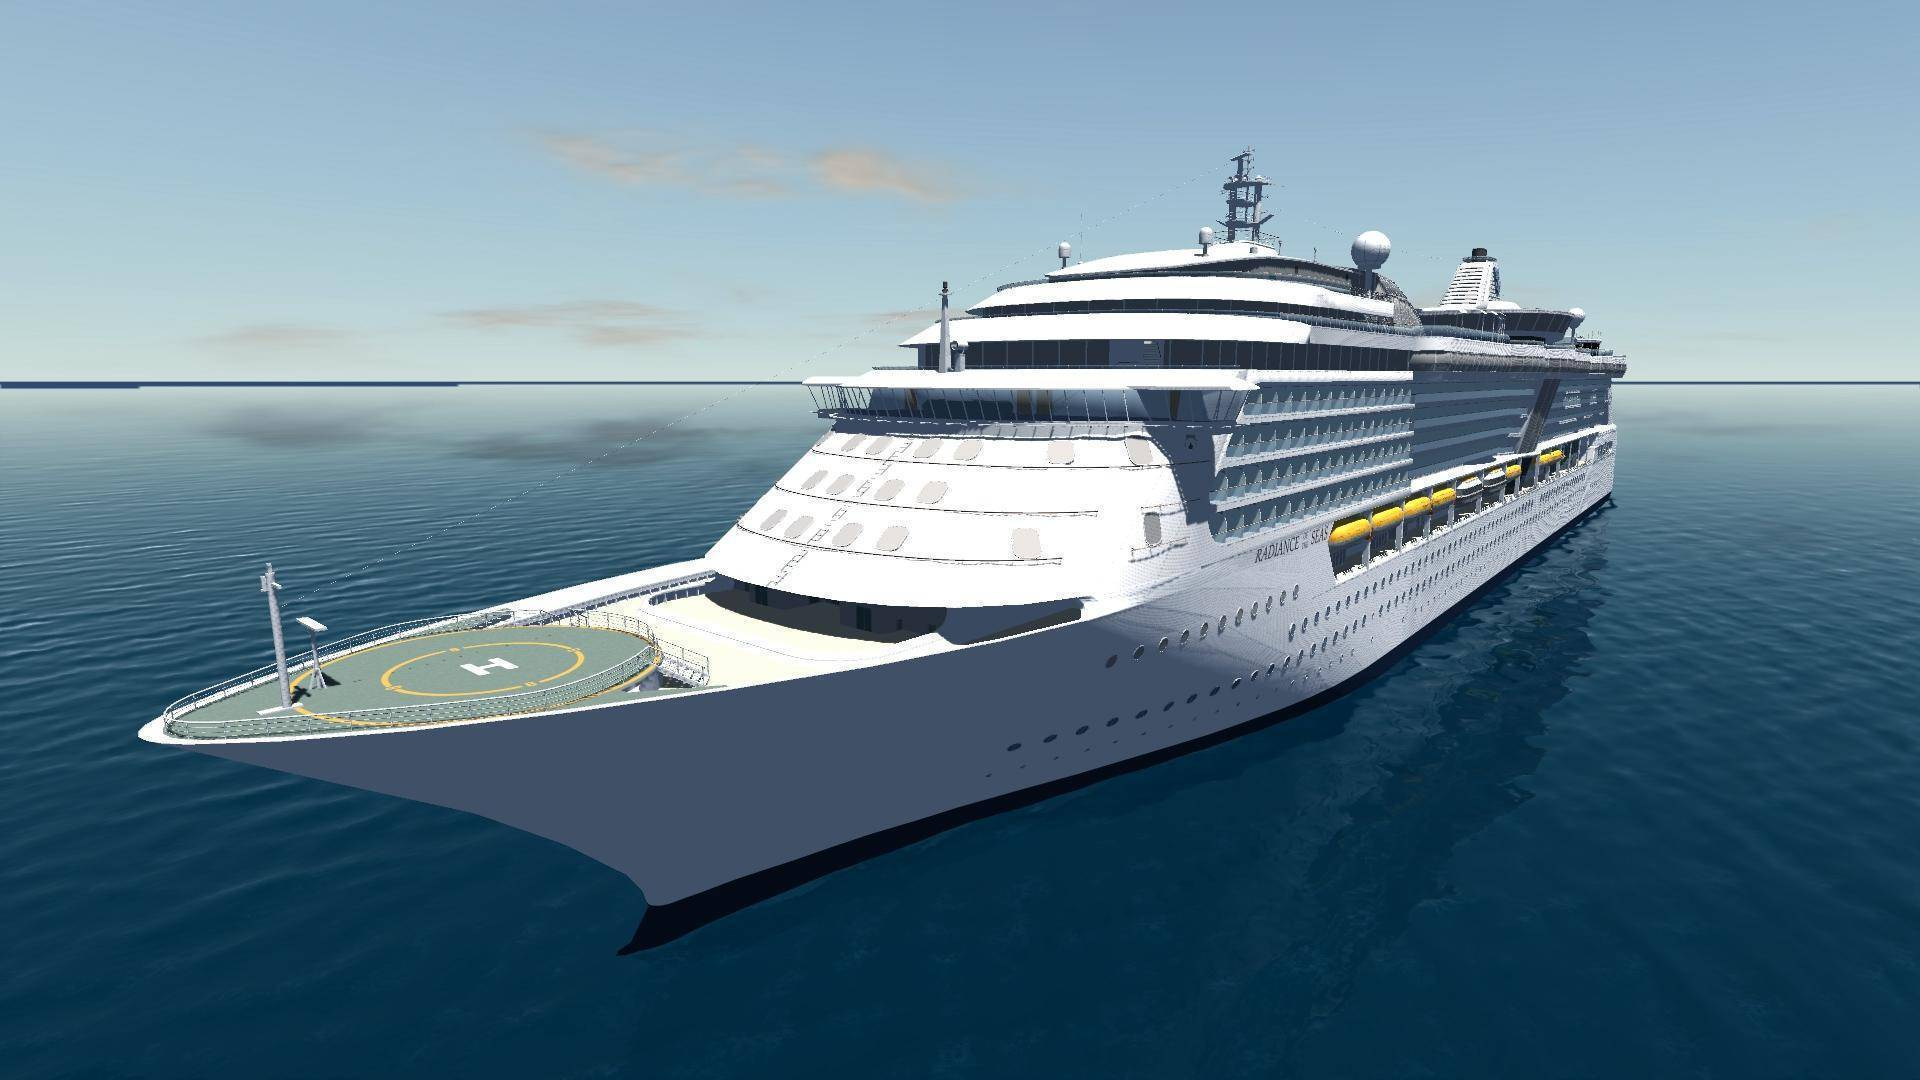 A smallish cruise ship, with about 2, passenger capacity, with moderate amenities, sailing in the Caribbean might come in somewhat below $,, For a somewhat huge ALLURE OF THE SEAS, figure on $bn.